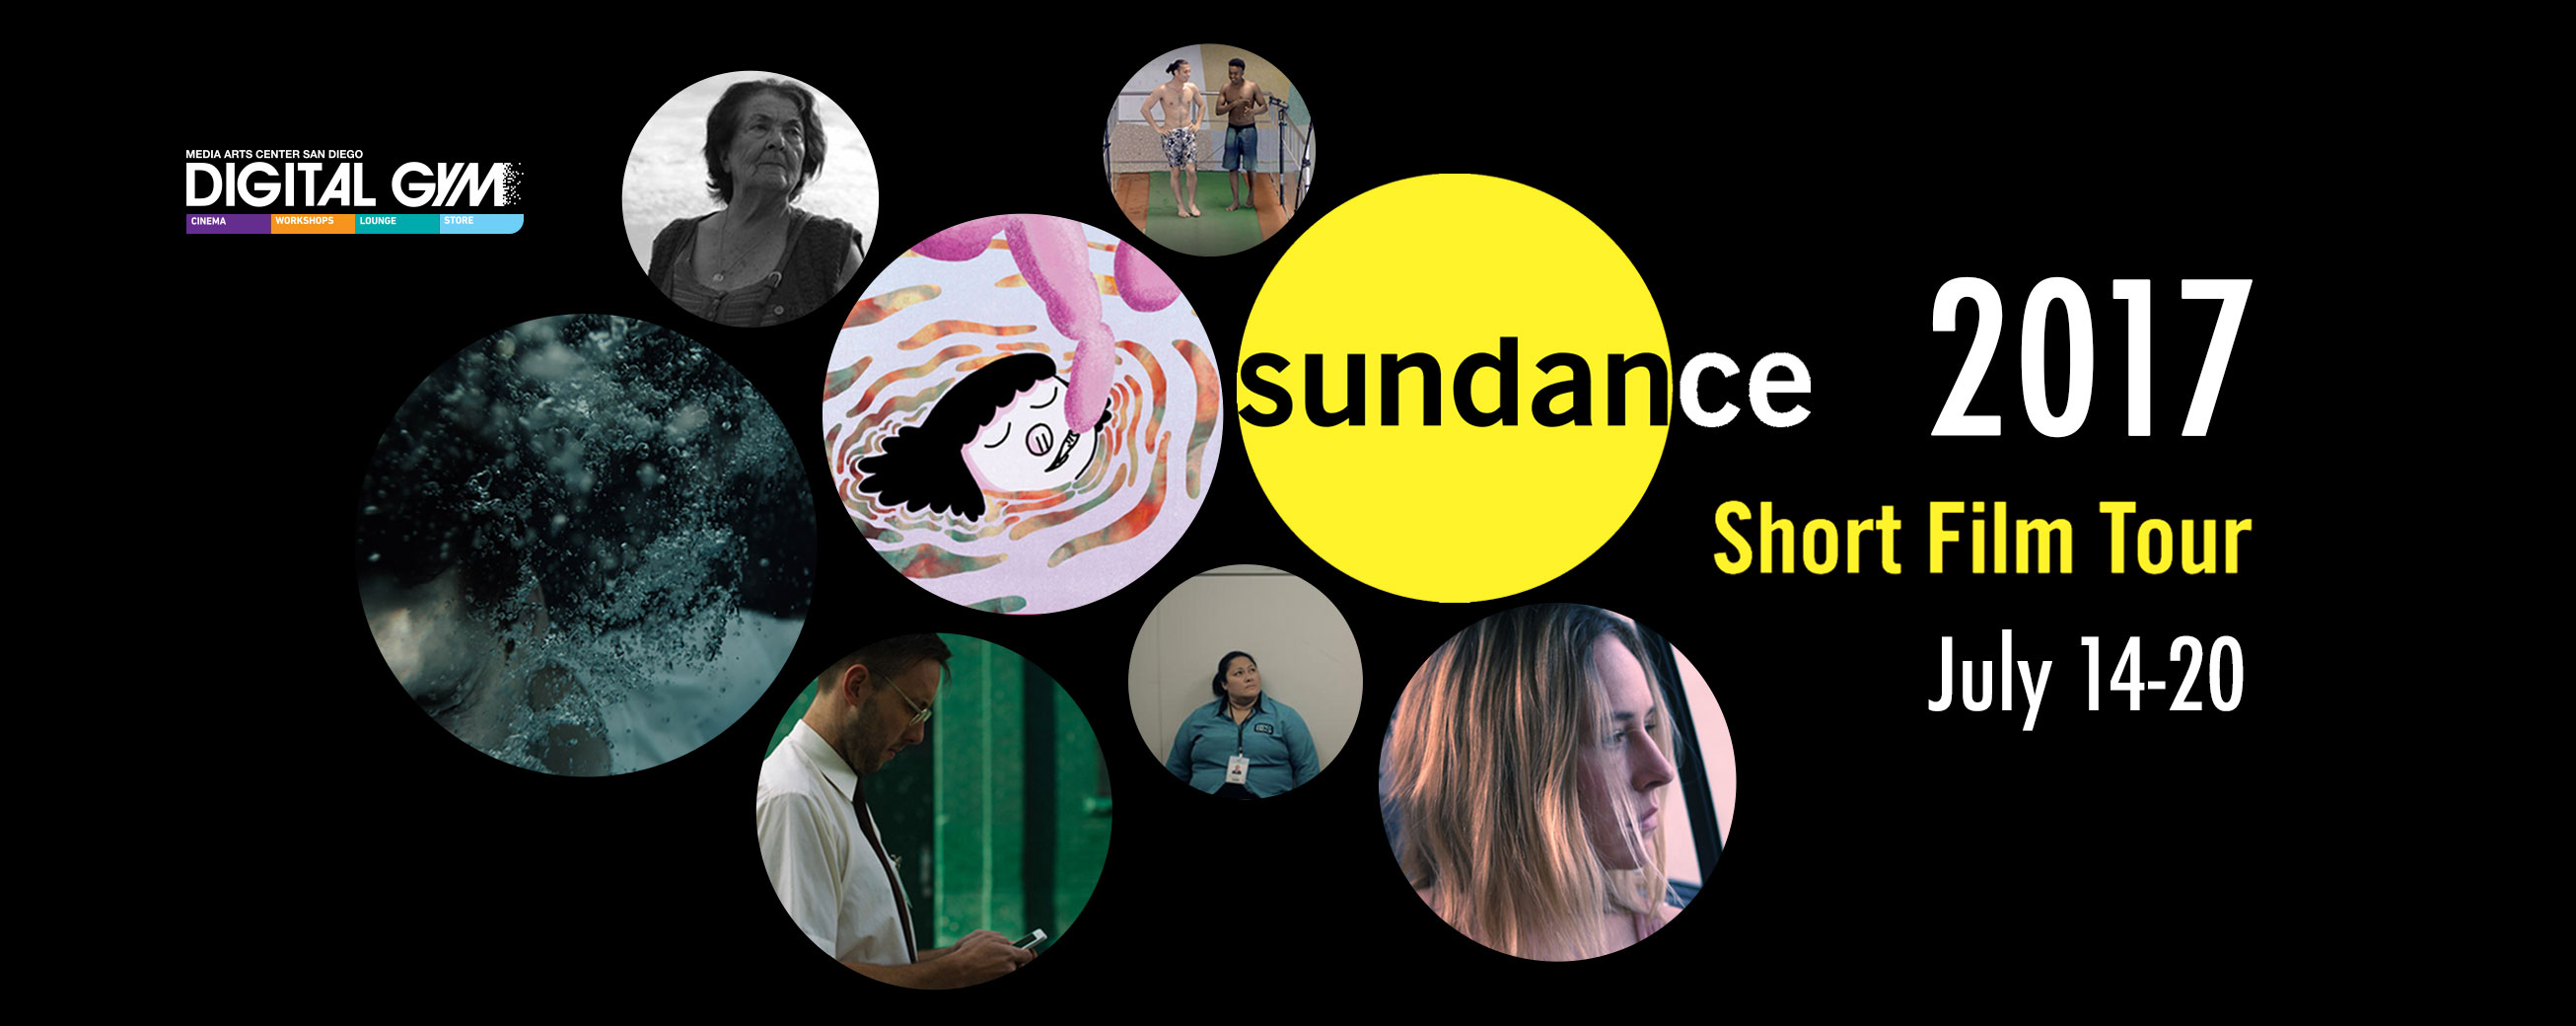 2017 Sundance Film Festival Short Film Tour (July 14 – July 20)